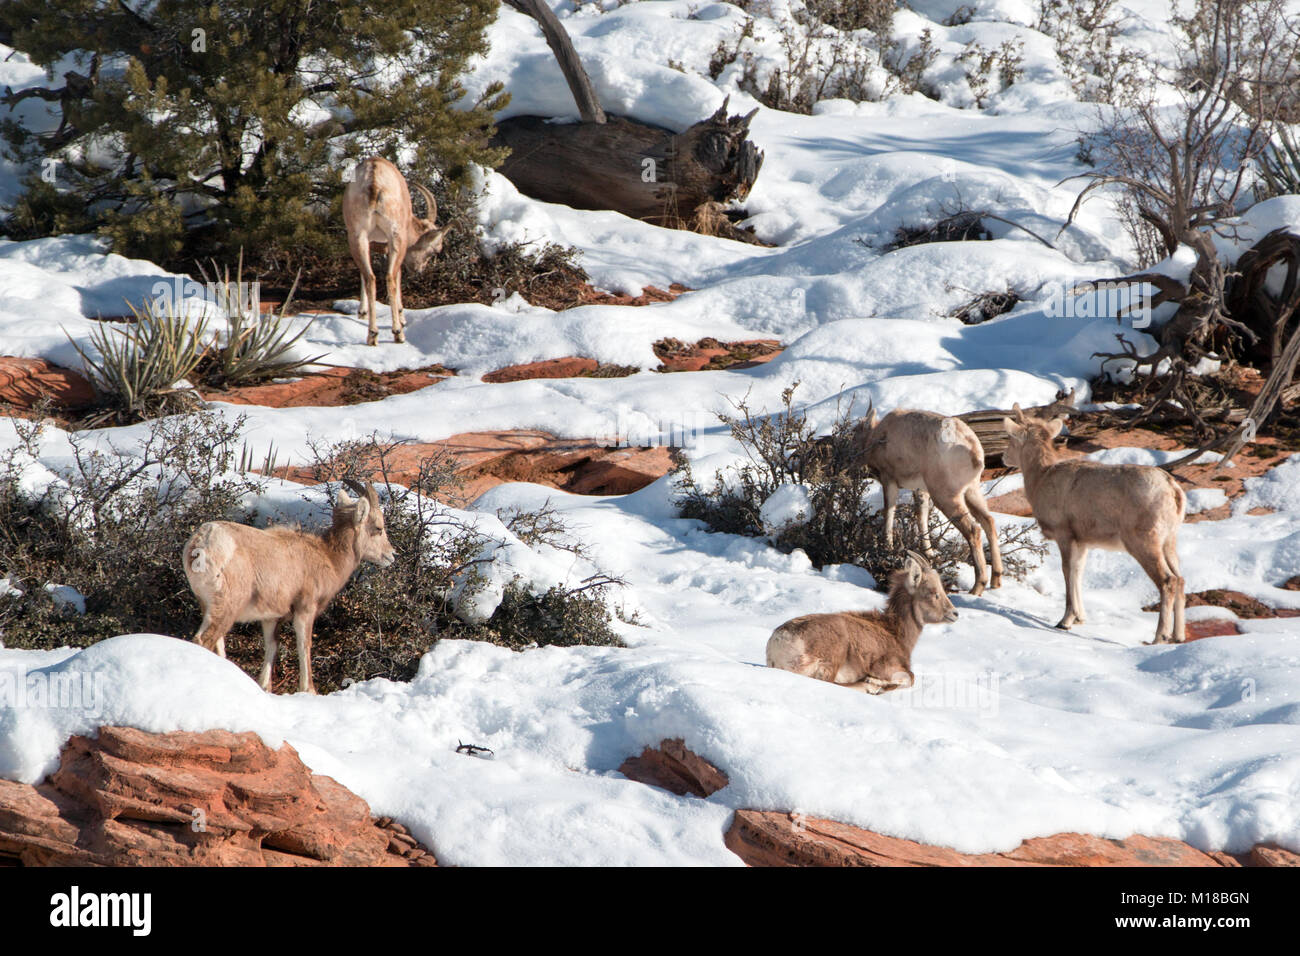 Ram Big Horn >> Desert Big Horn Sheep Stock Photos & Desert Big Horn Sheep Stock Images - Alamy